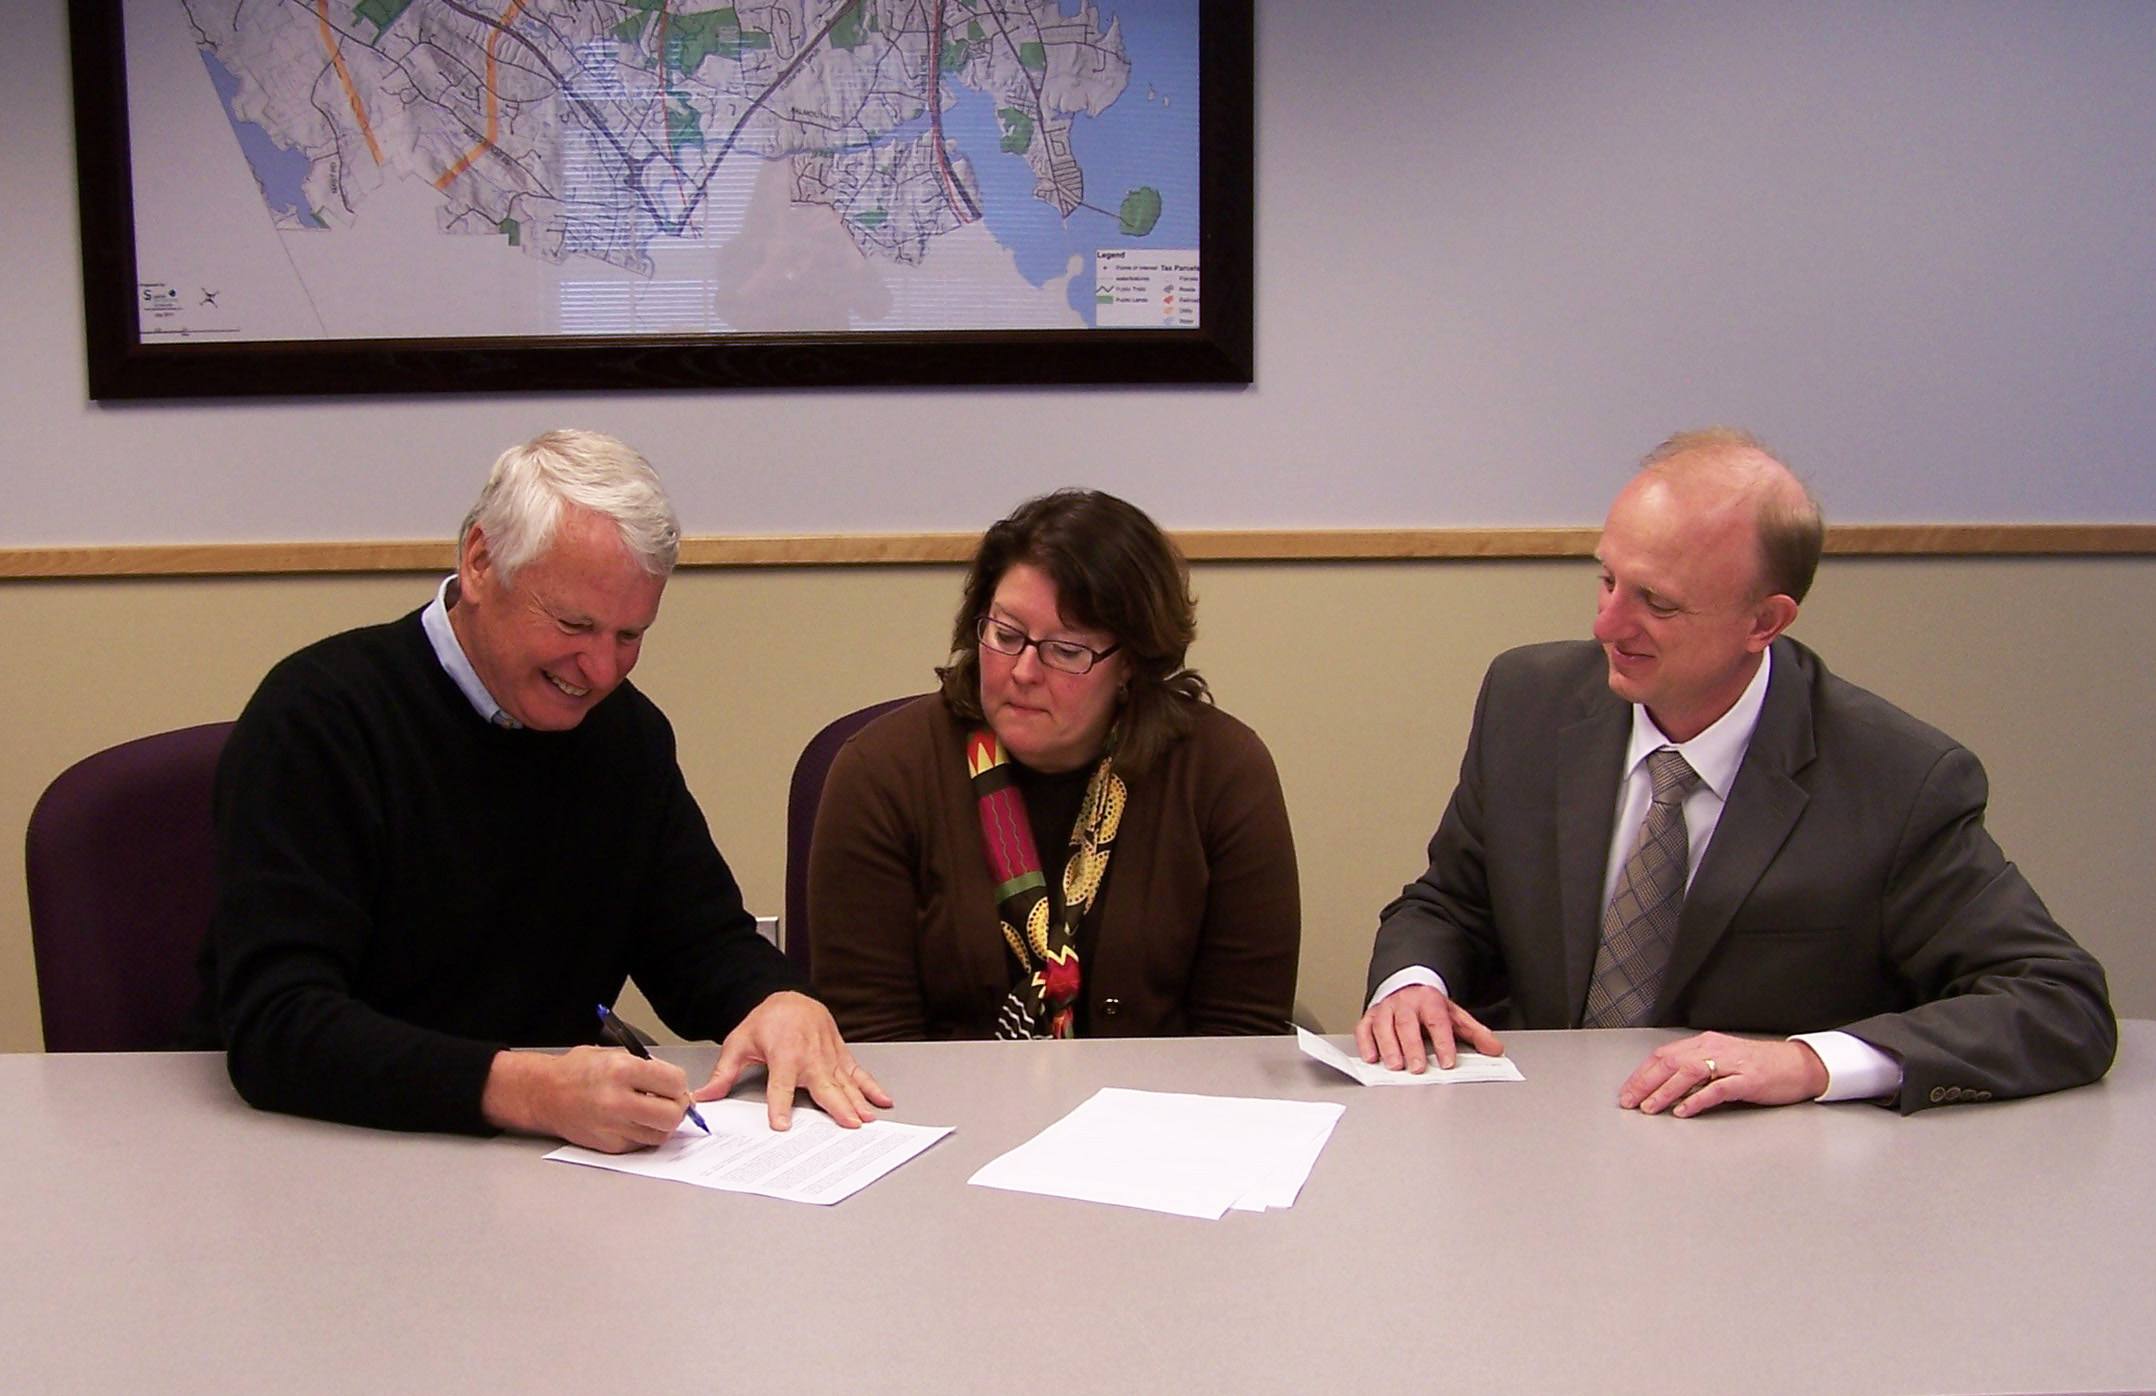 OceanView Owner, John Wasileski, Signs Agreement to Purchase School Property From Town of Falmouth